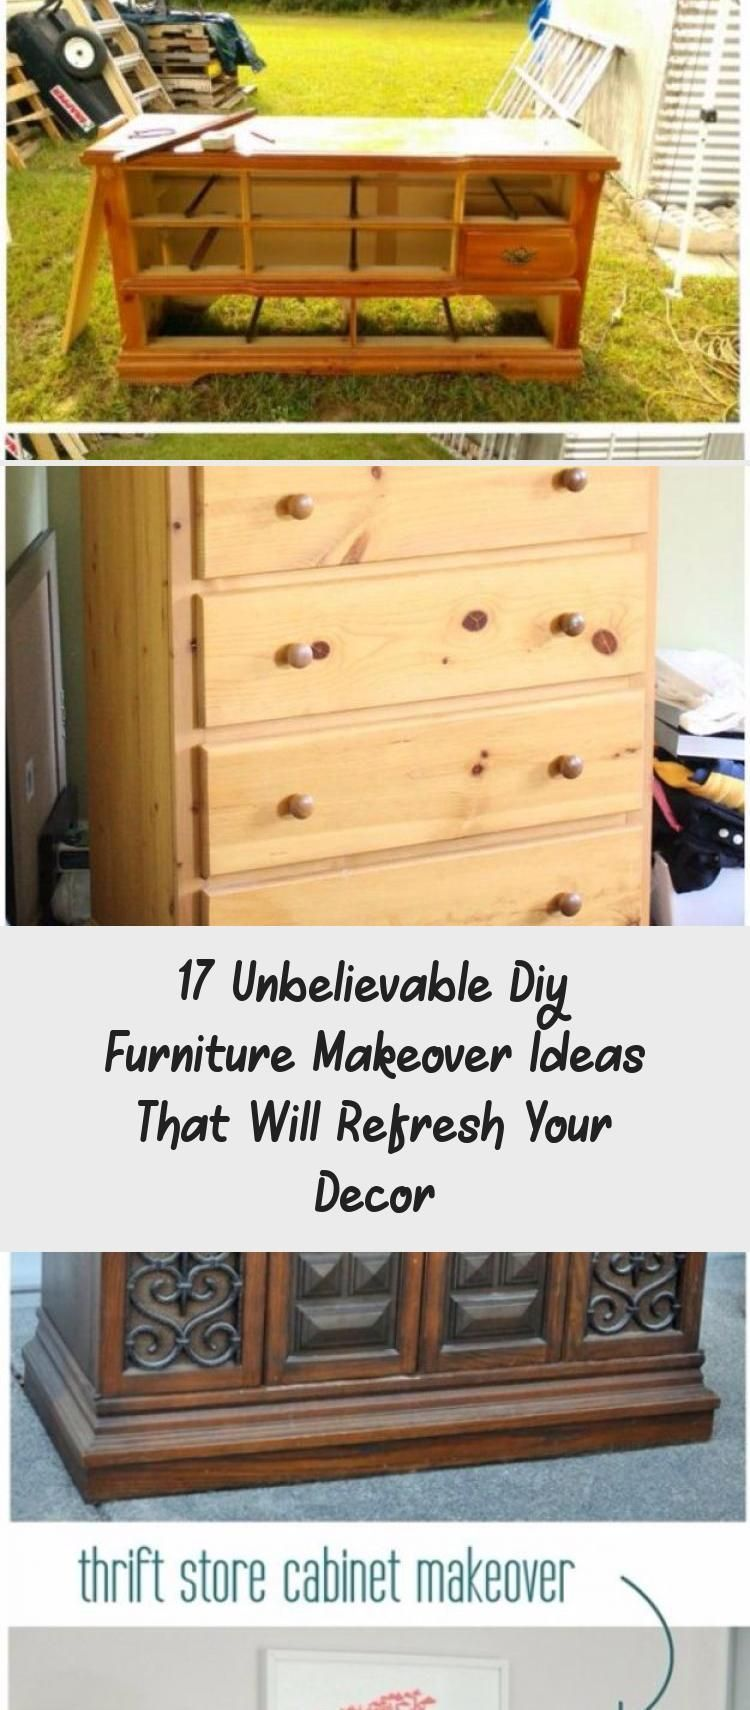 17 Unbelievable Diy Furniture Makeover Ideas That Will Refresh Your Decor - Pinokyo -  17 Unbelievable DIY Furniture Makeover Ideas That Will Refresh Your Decor #HomeDecorDIYRecycle  - #decor #DIY #Furniture #Ideas #Makeover #Pinokyo #Refresh #Thriftedhomedecorapartmenttherapy #Thriftedhomedecorbedrooms #Thriftedhomedecorbeforeandafter #Thriftedhomedecorboho #Thriftedhomedecordiyideas #Thriftedhomedecorfleamarkets #Thriftedhomedecorfurnituremakeover #Thriftedhomedecorhouseholditems #Thriftedhom